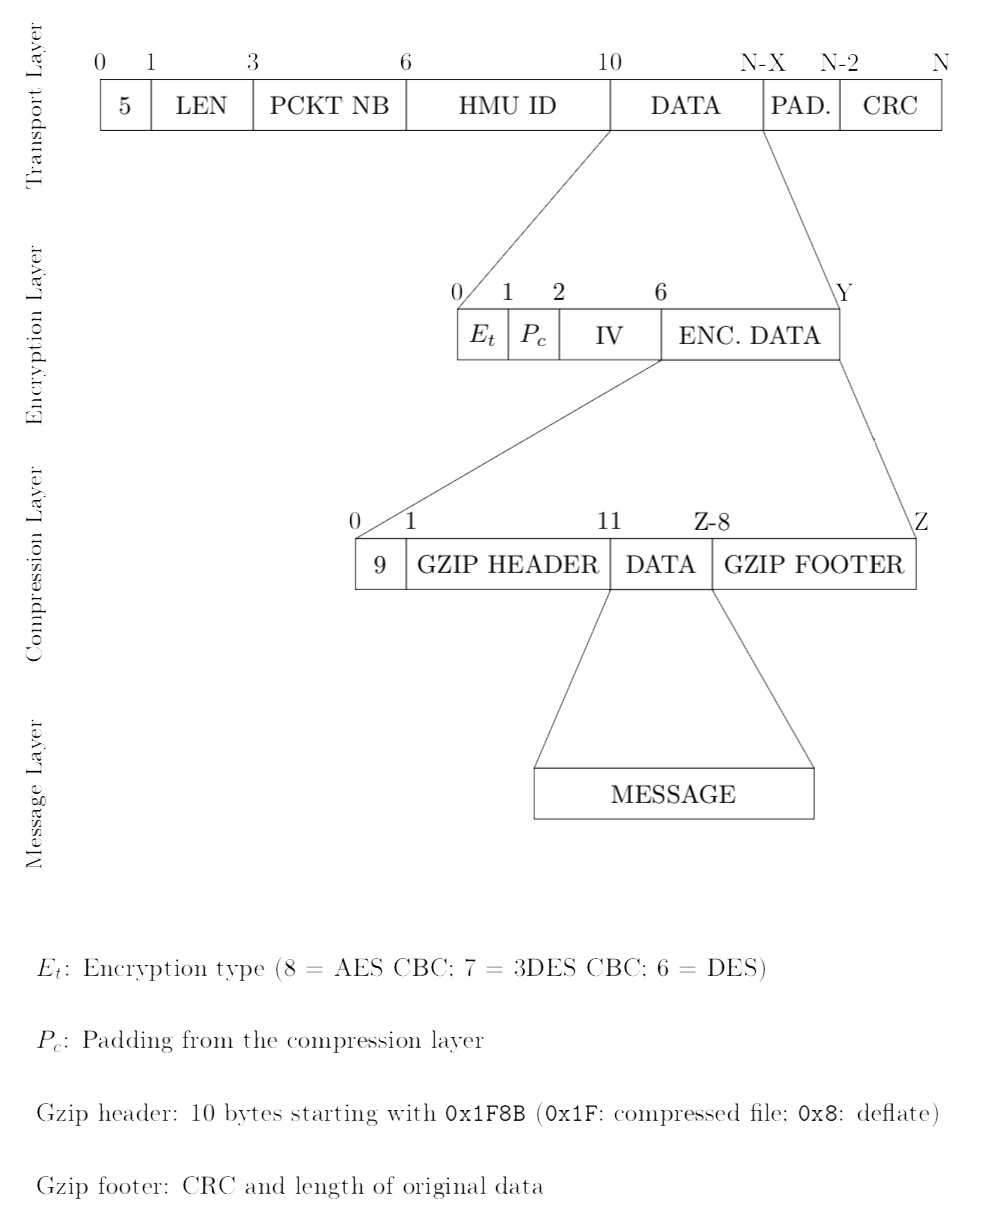 Figure 4: Detailed structure of the communication protocol's packet